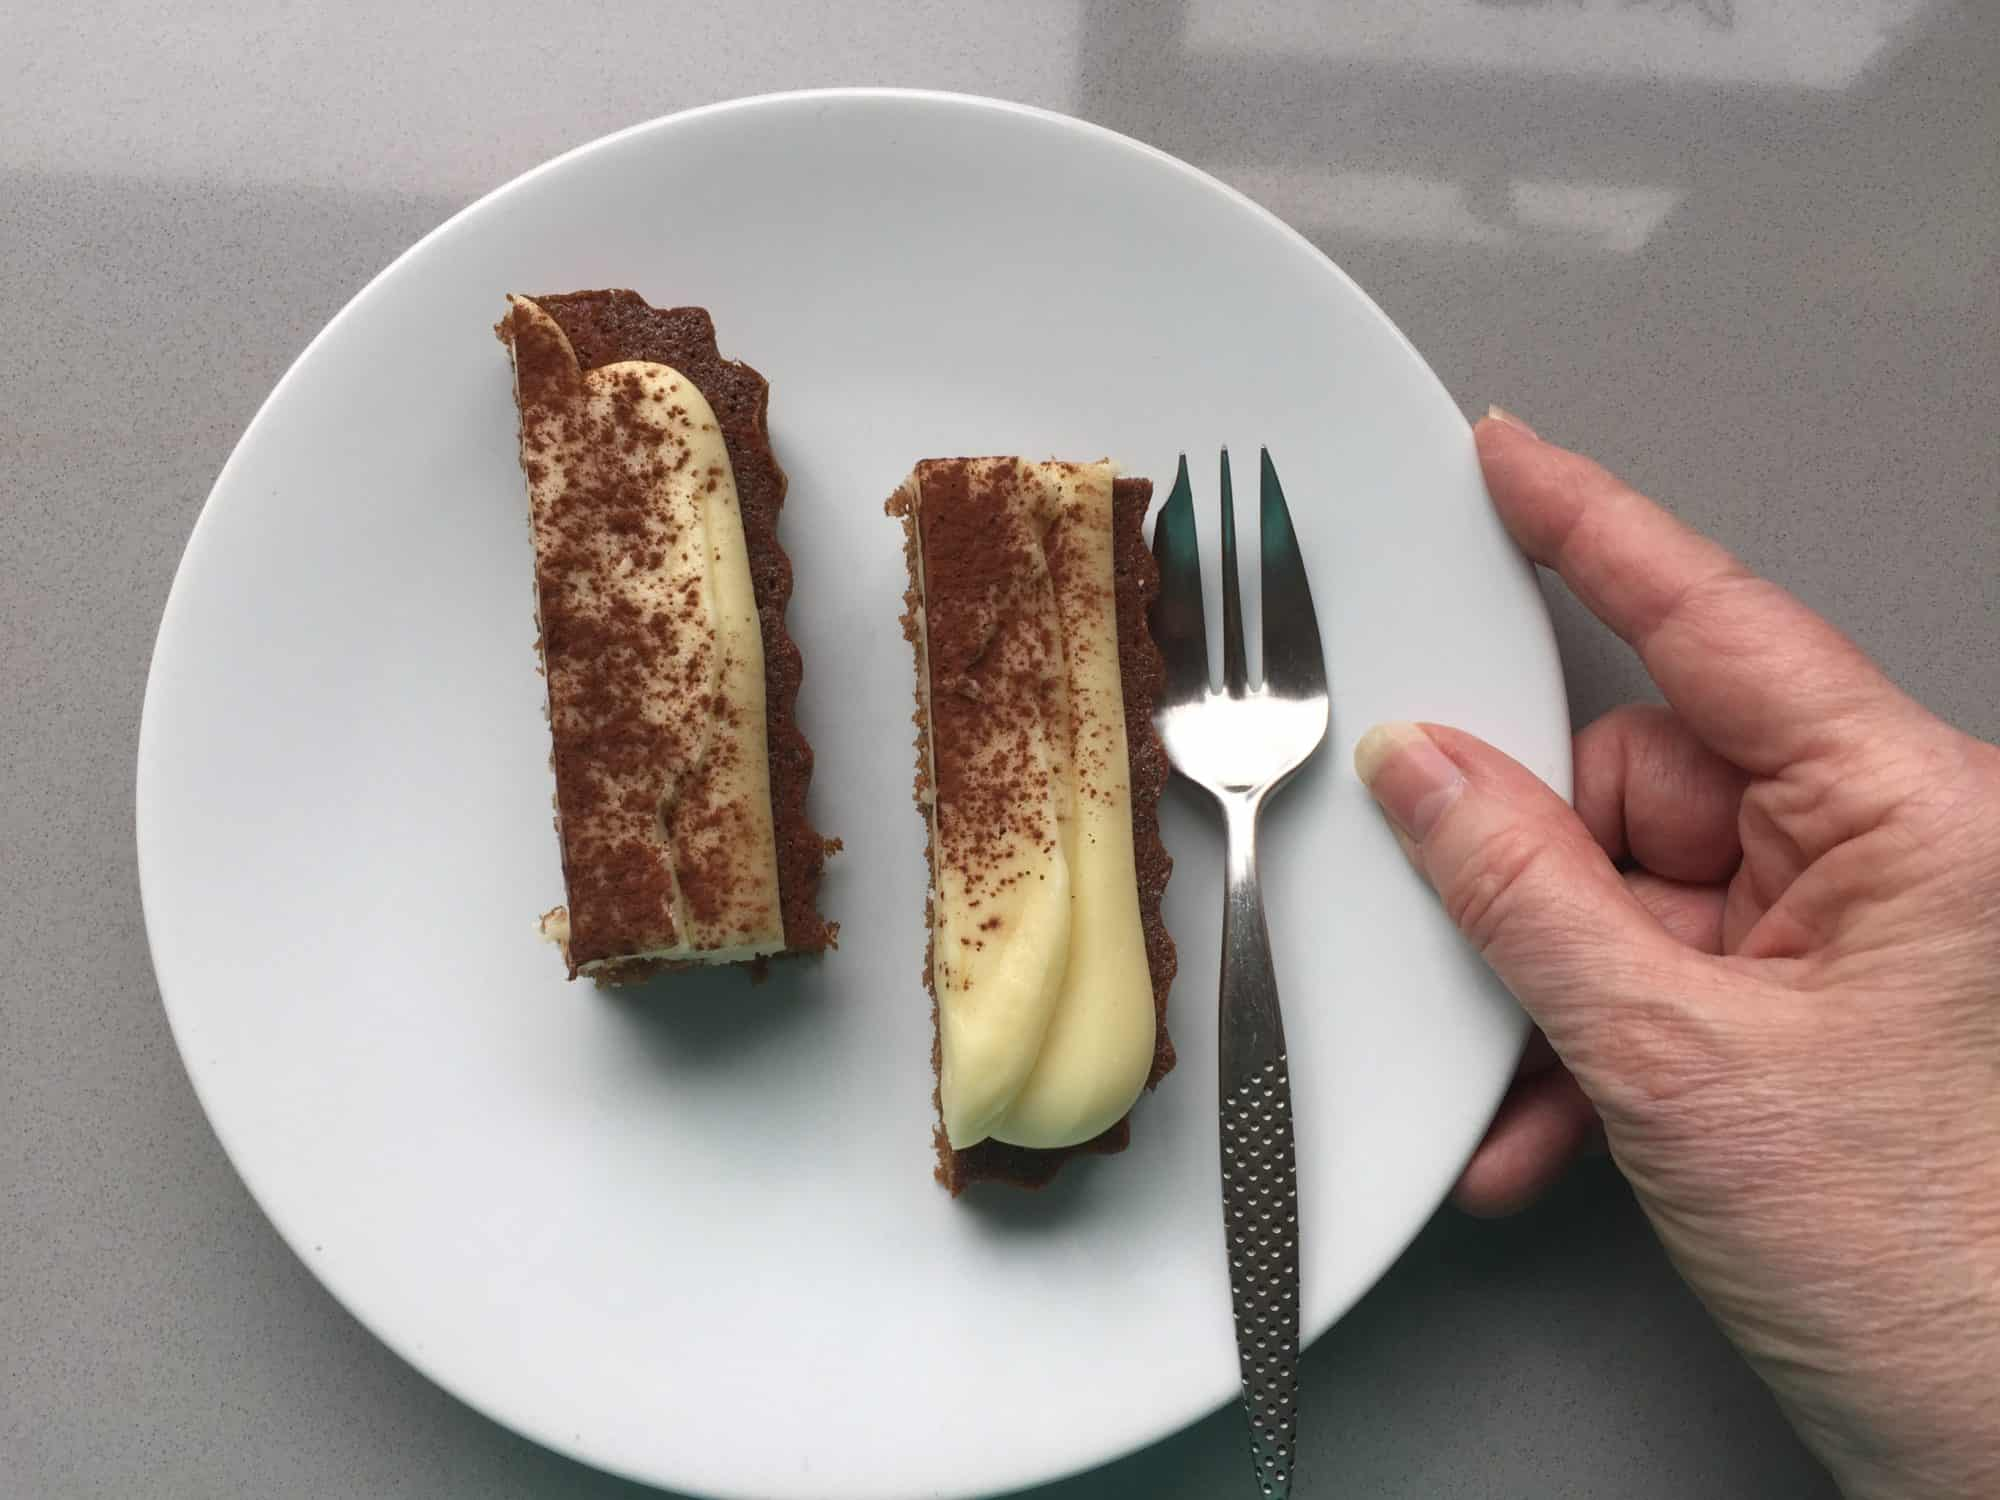 Slices of cakes on a white plate